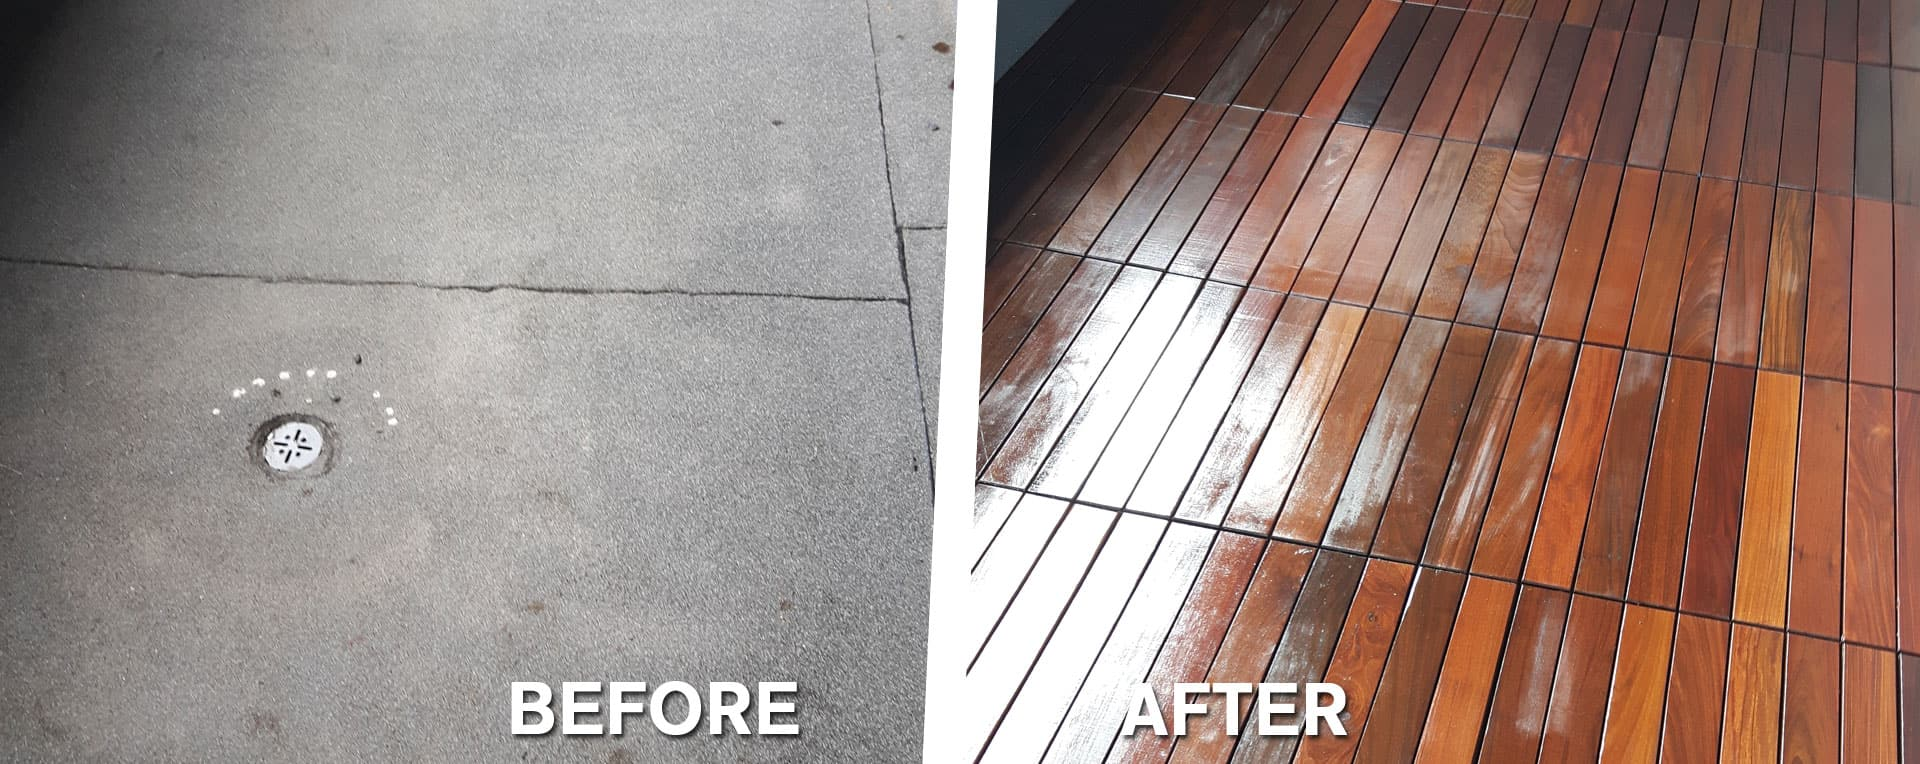 Before and after photos of Ipe Structural tile installation